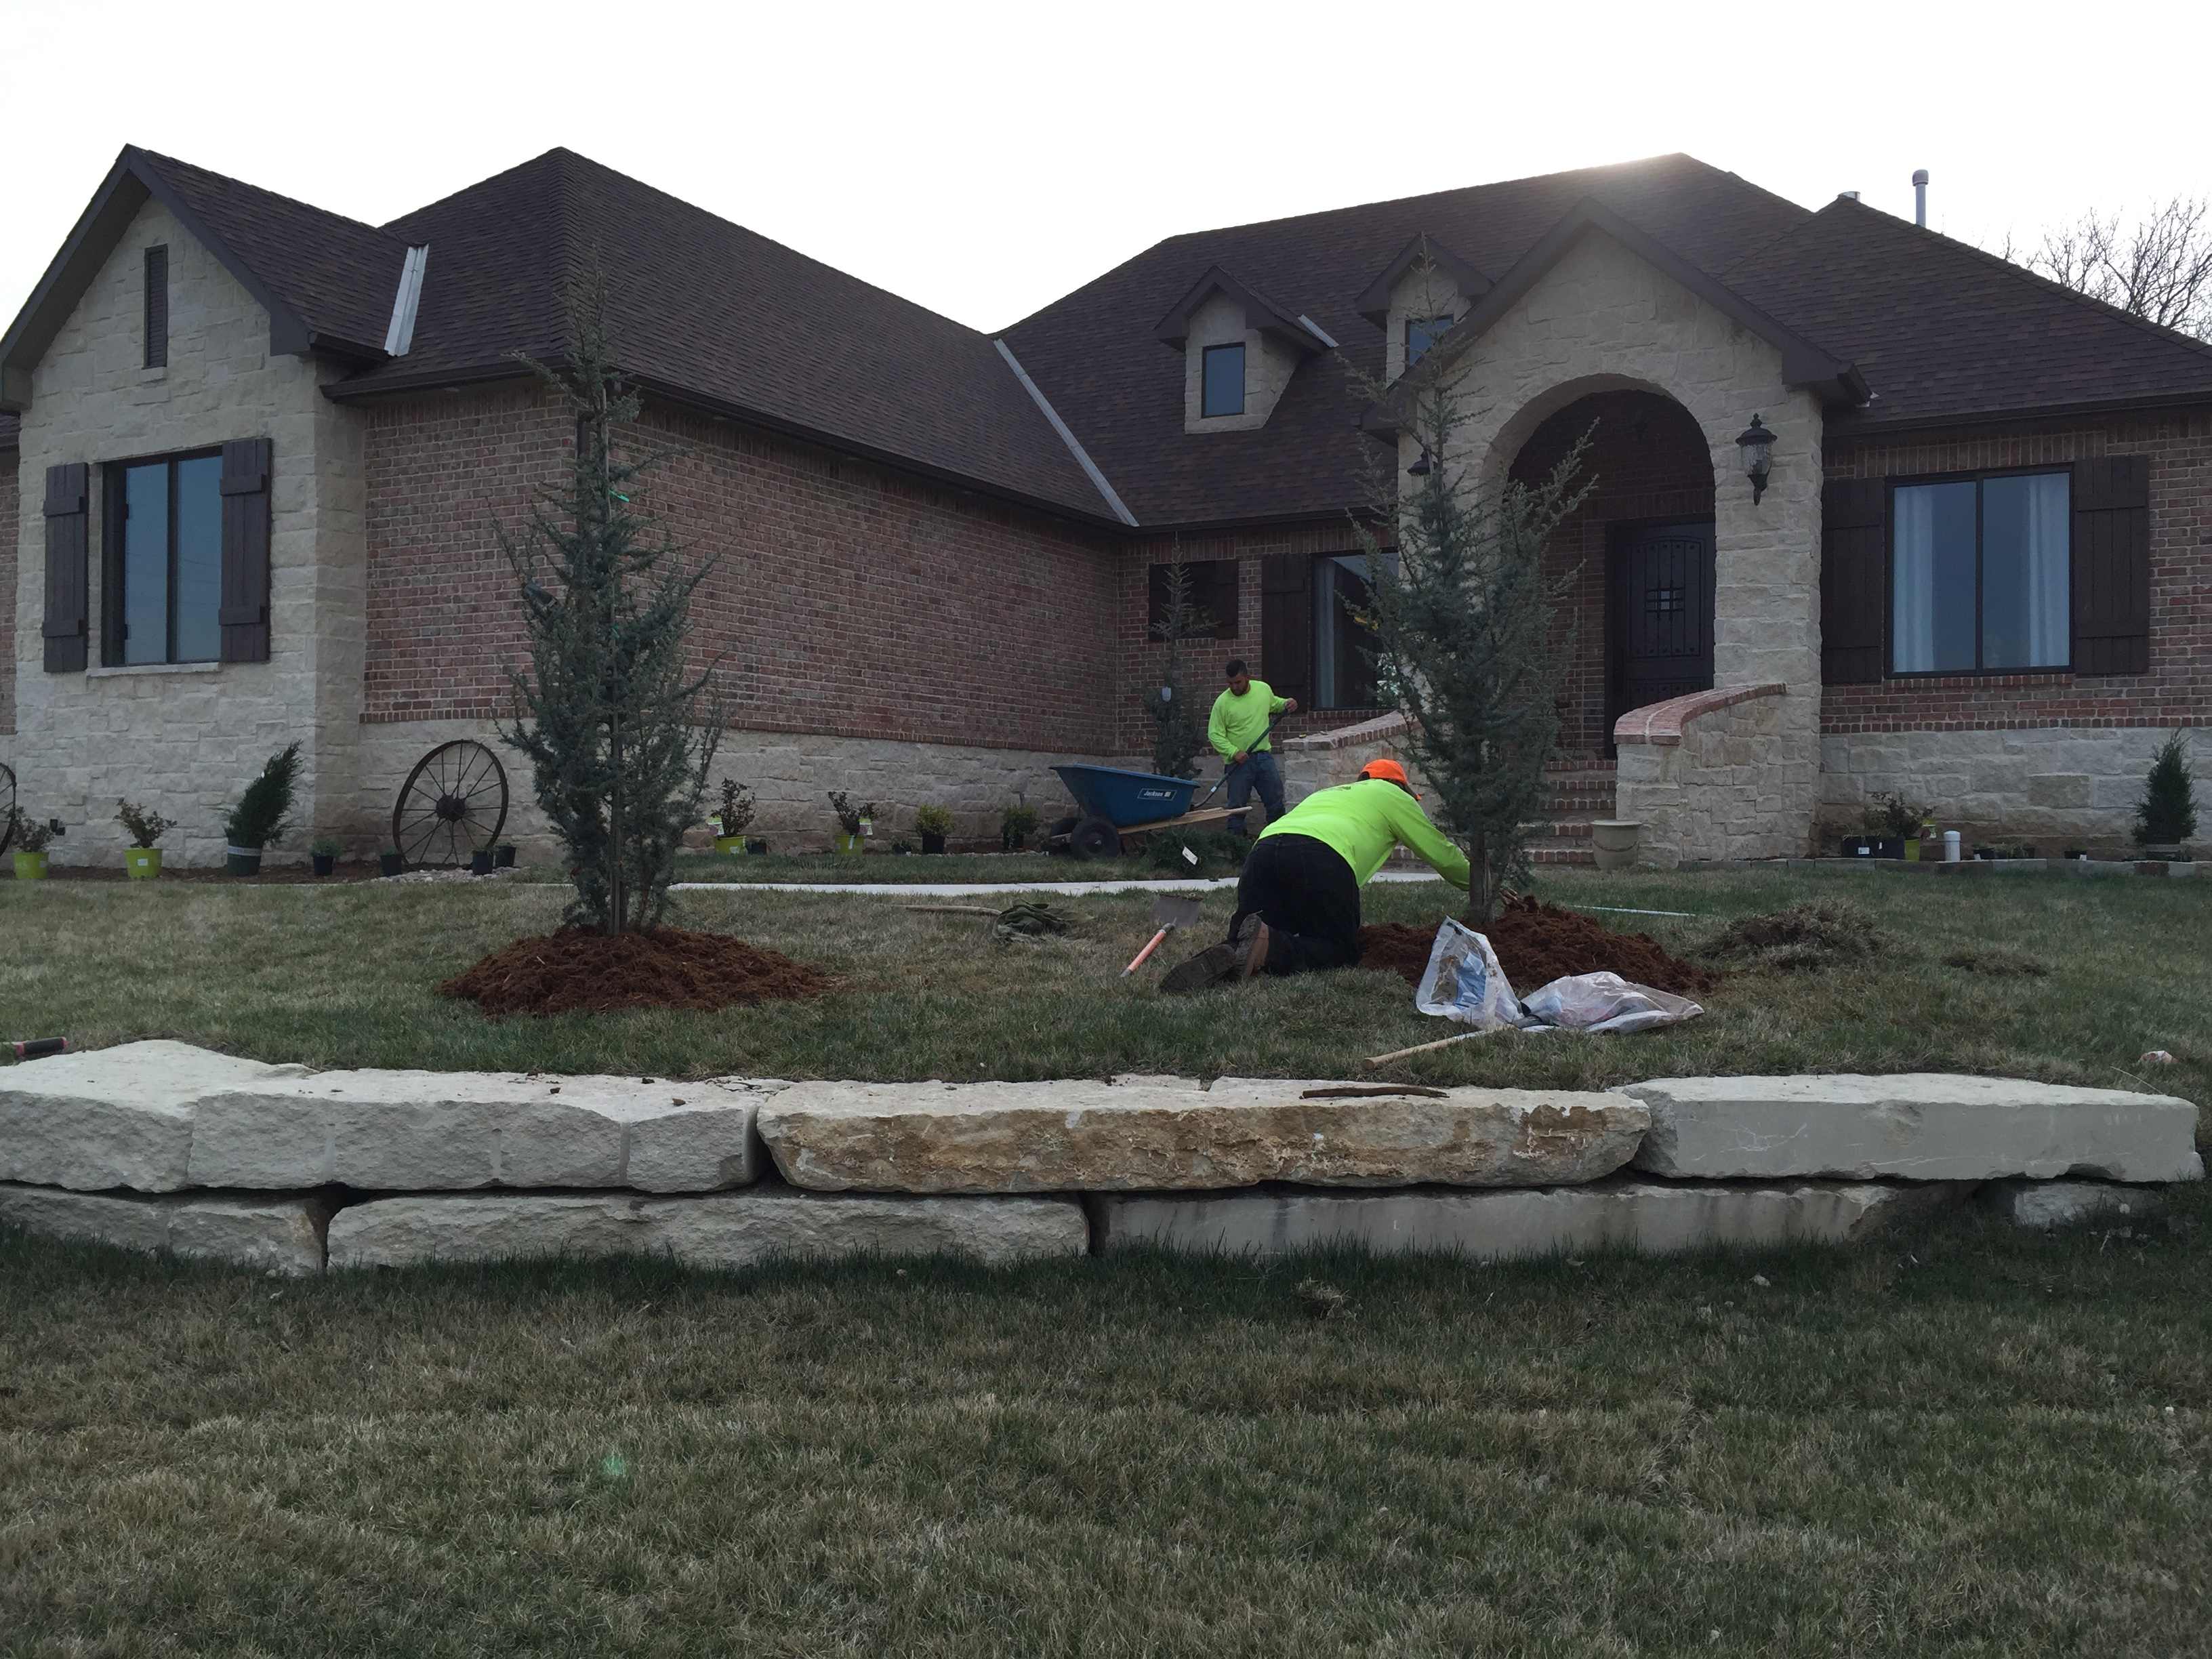 New home landscaping daniels lawn and landscaping services for Home lawn design